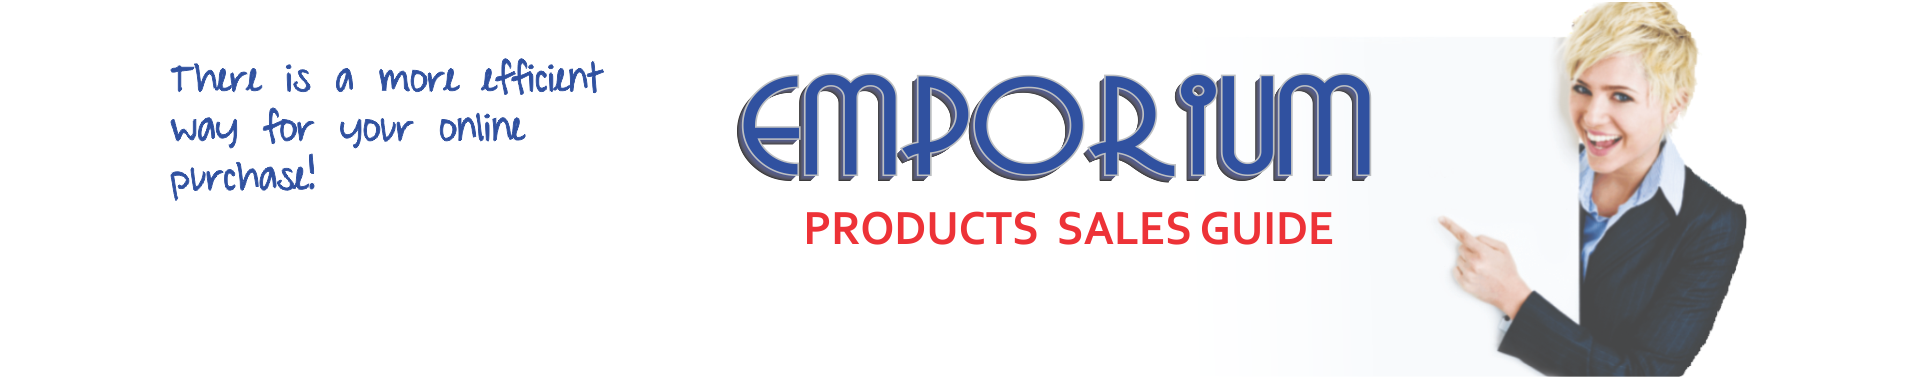 Emporium Product Sales Guide